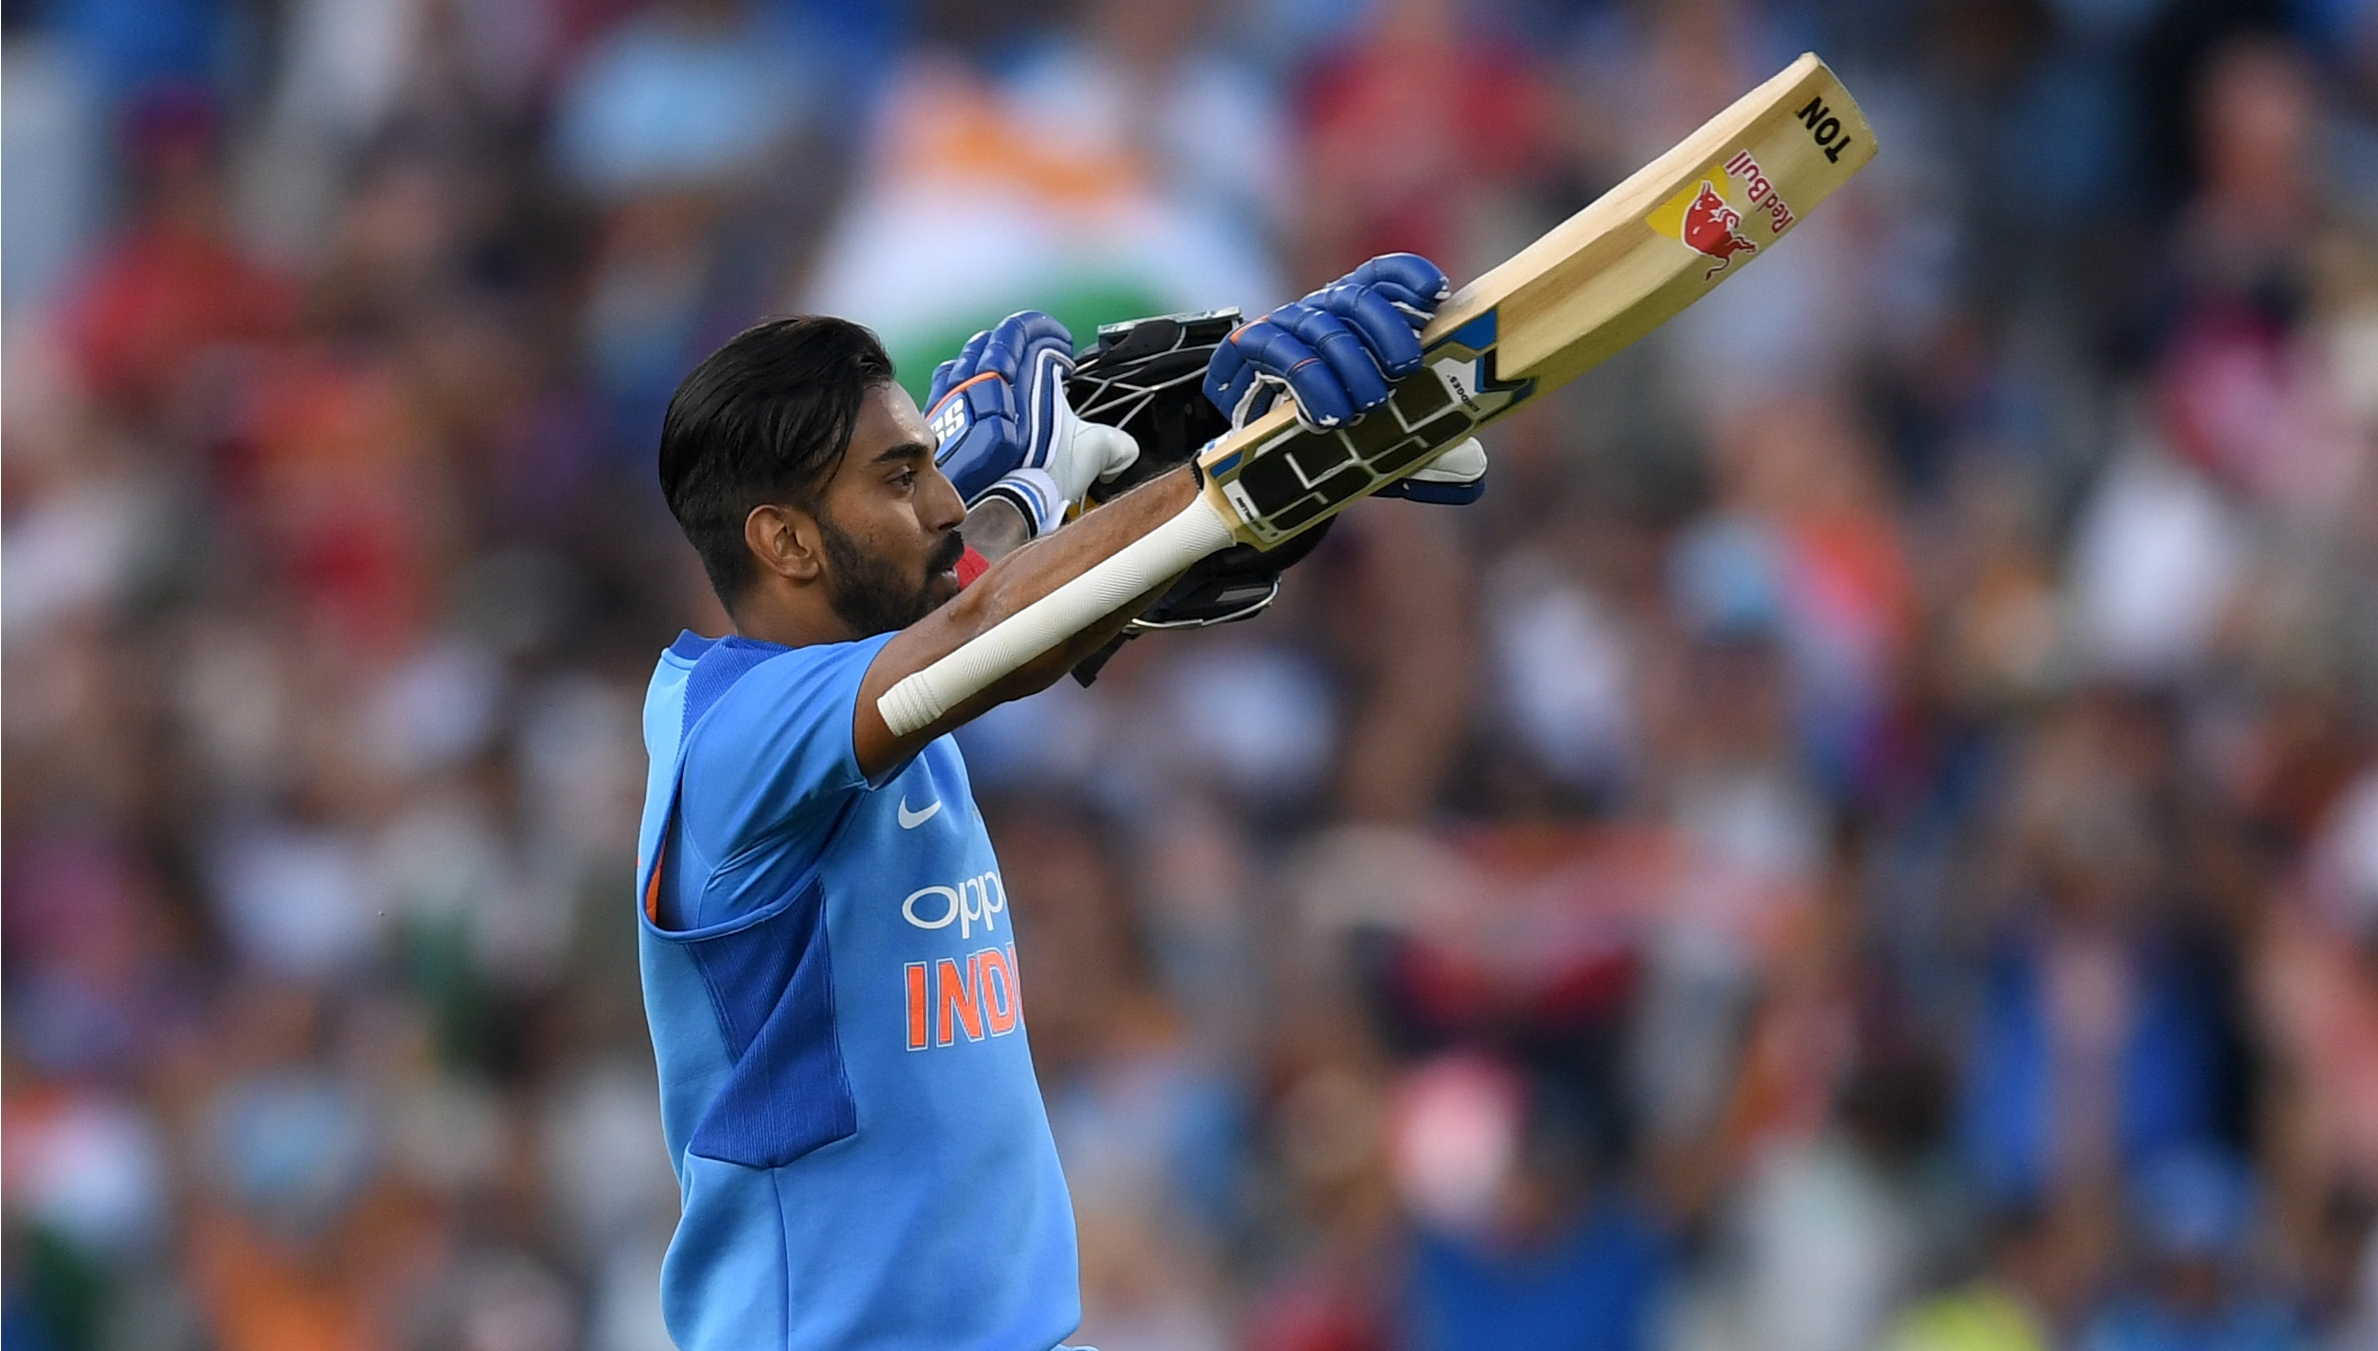 Kl Rahul Hd Images: Cricket News: KL Rahul Hopes He's Rediscovered His Form As